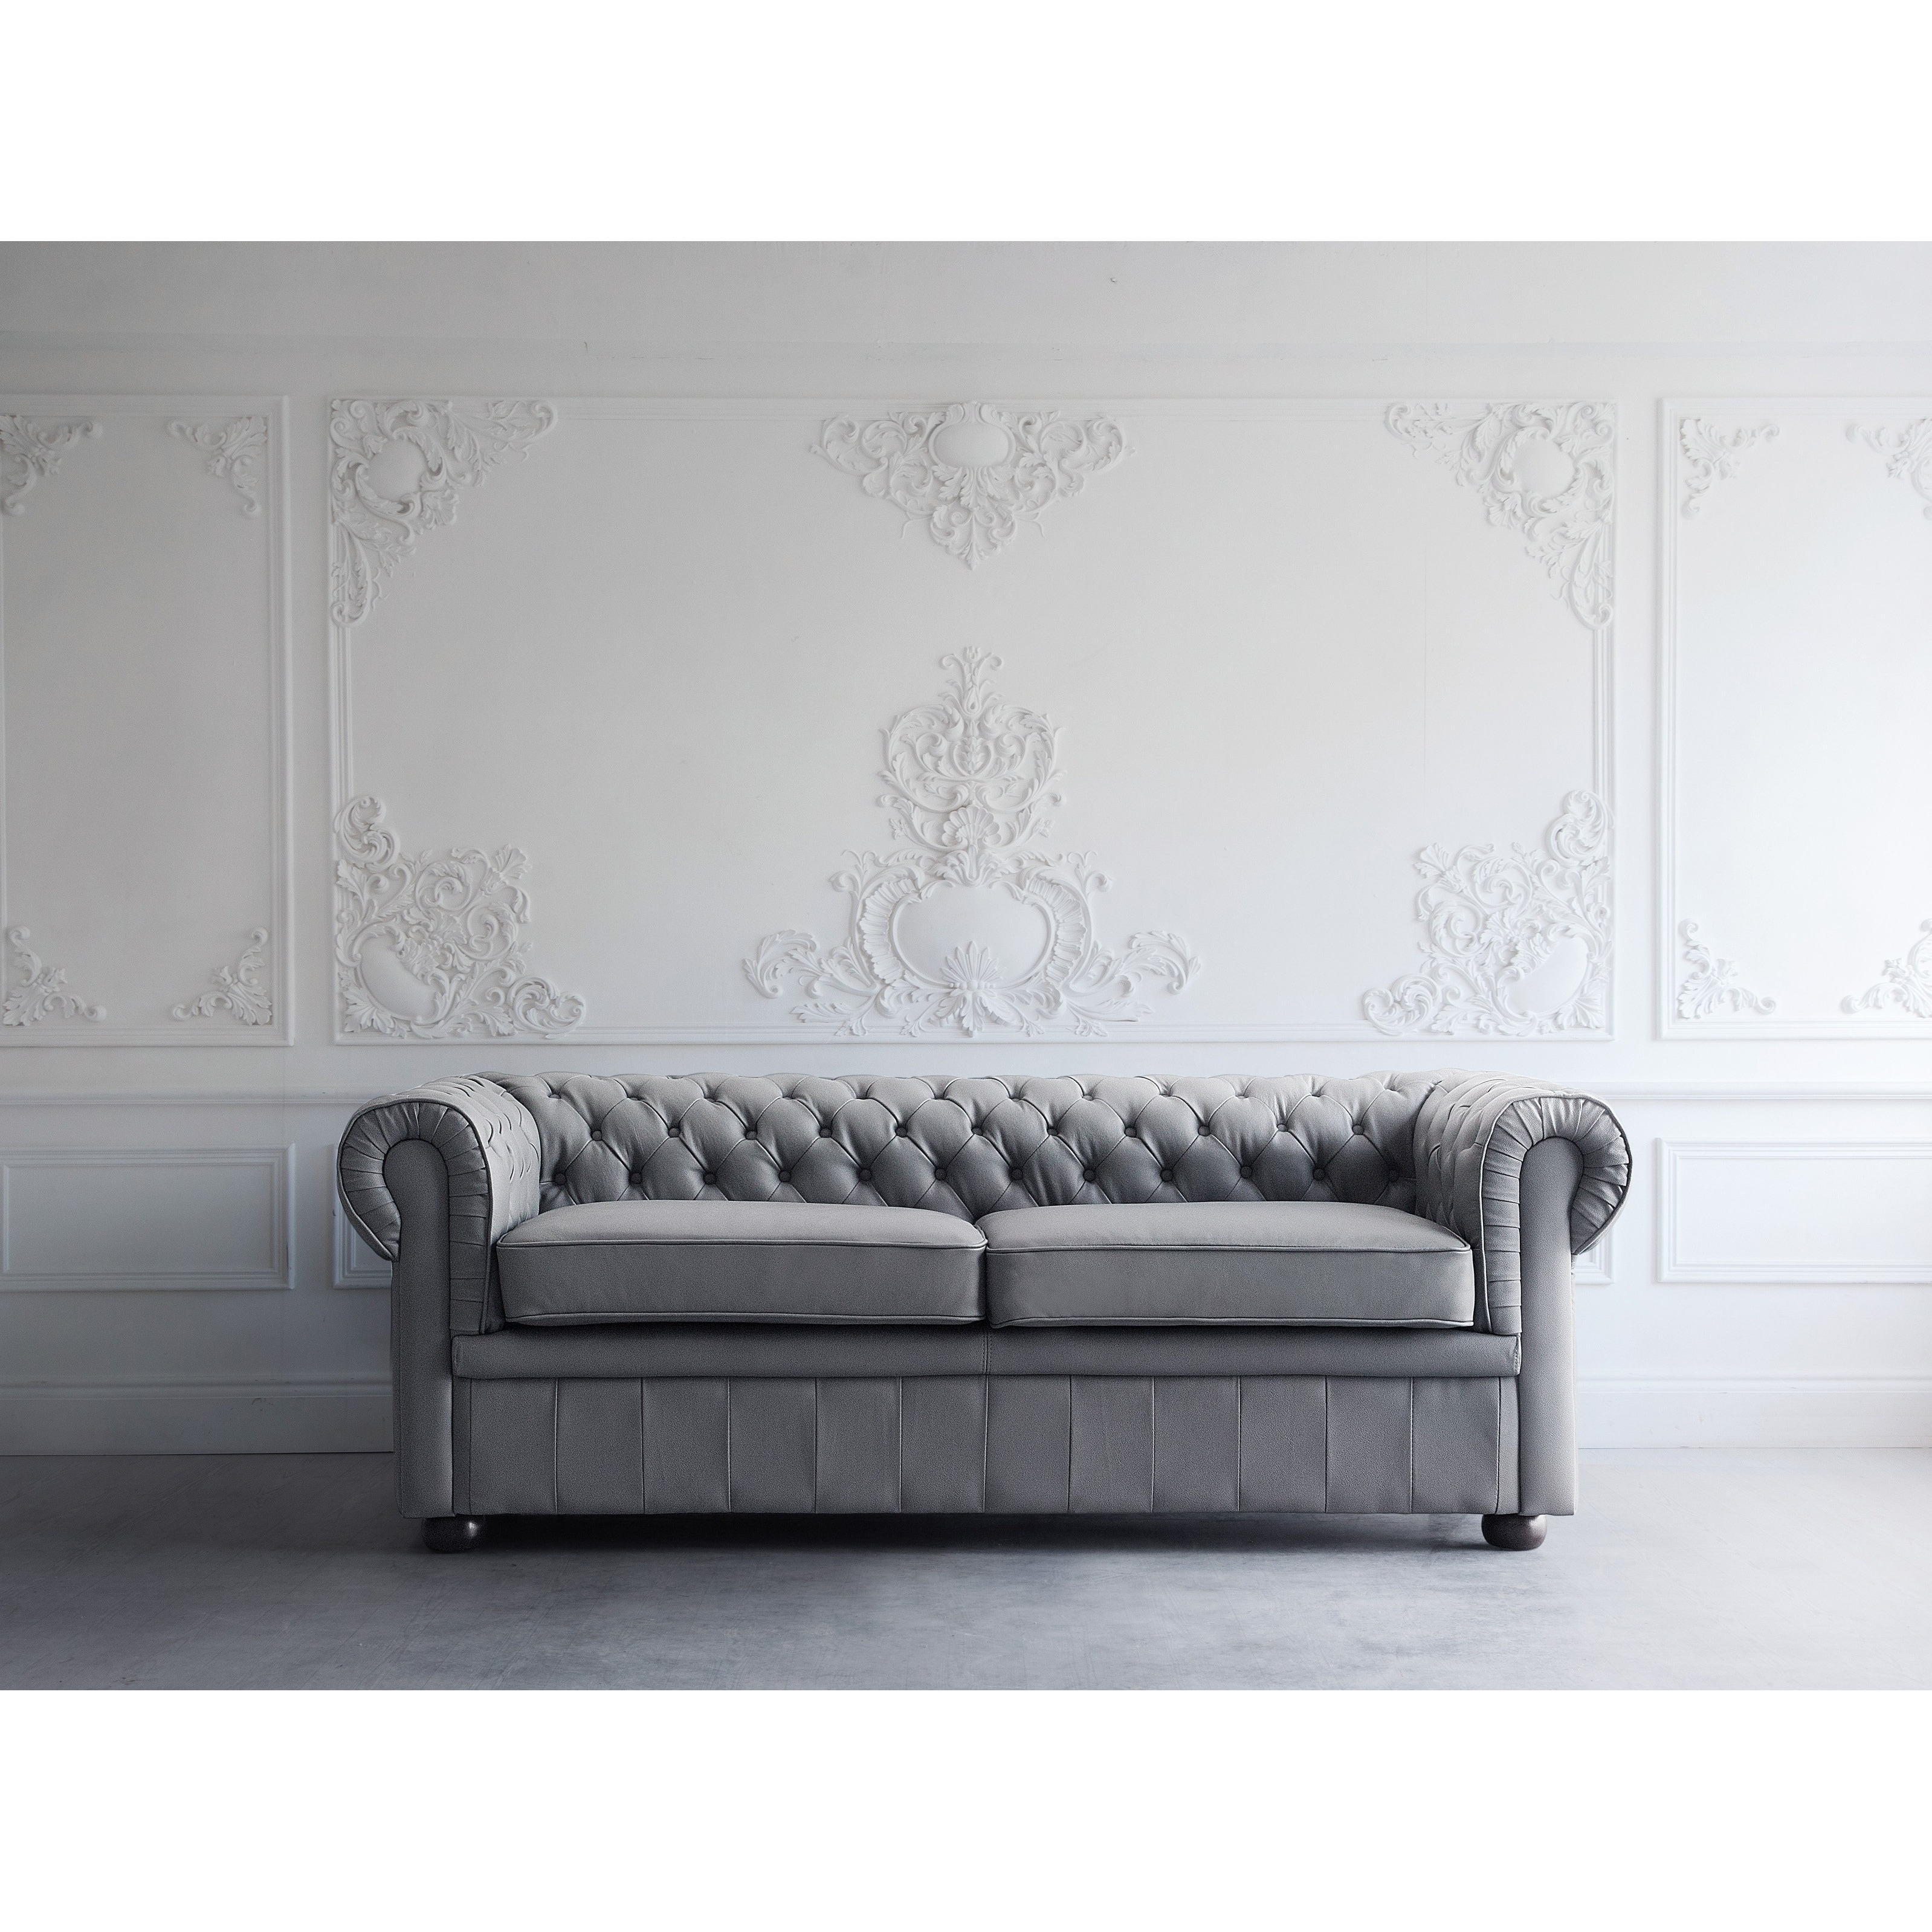 Shop Tufted Leather Sofa Gray Chesterfield Ships To Canada